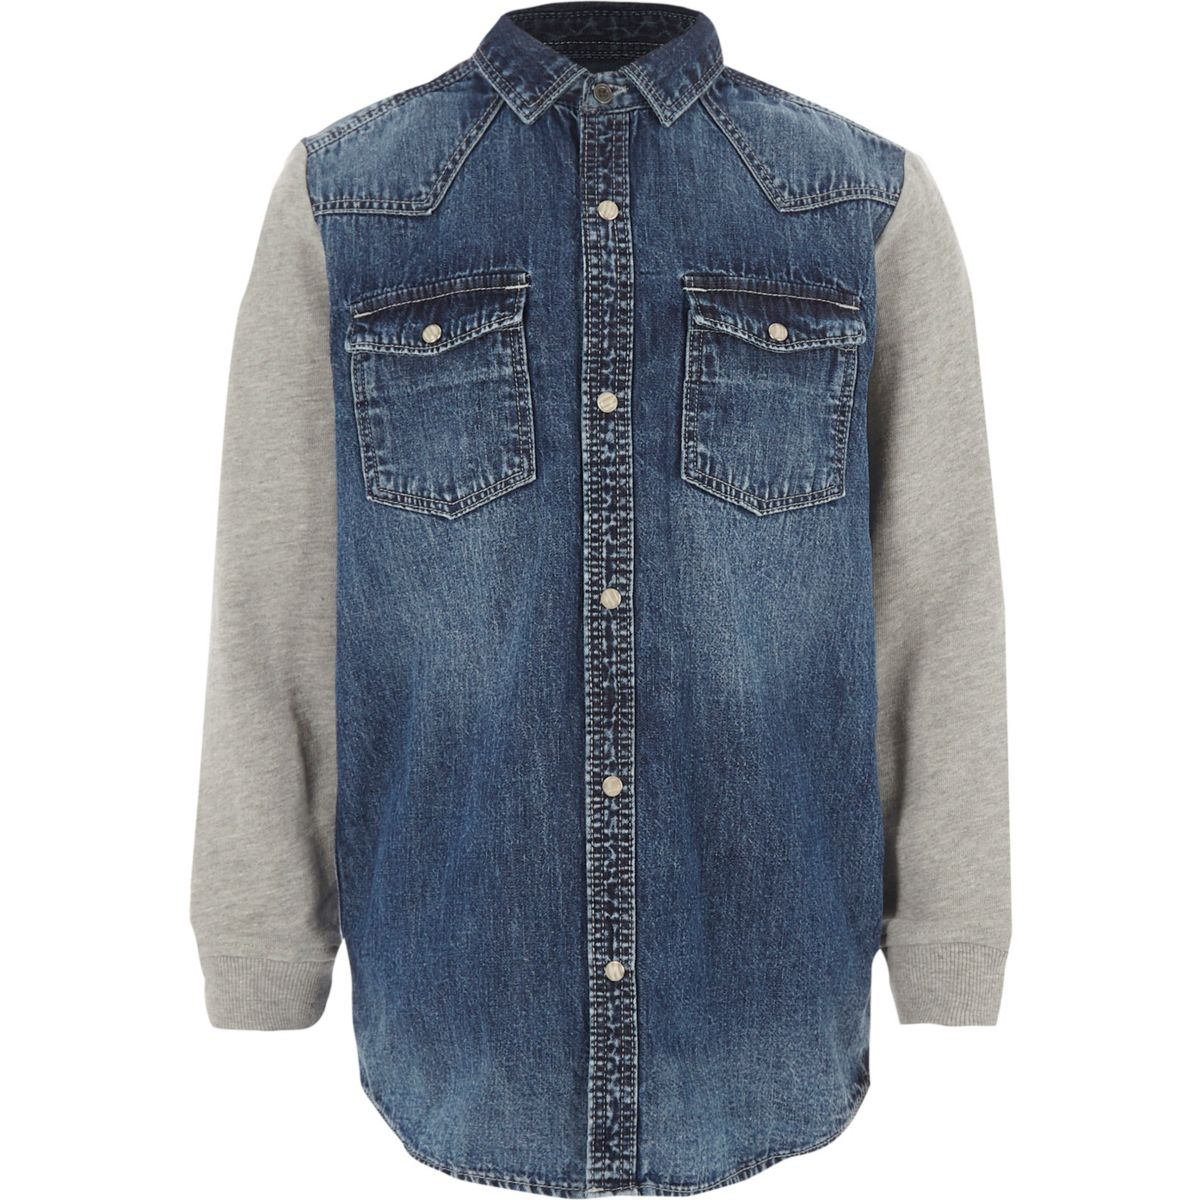 Boys blue denim jersey sleeve shirt